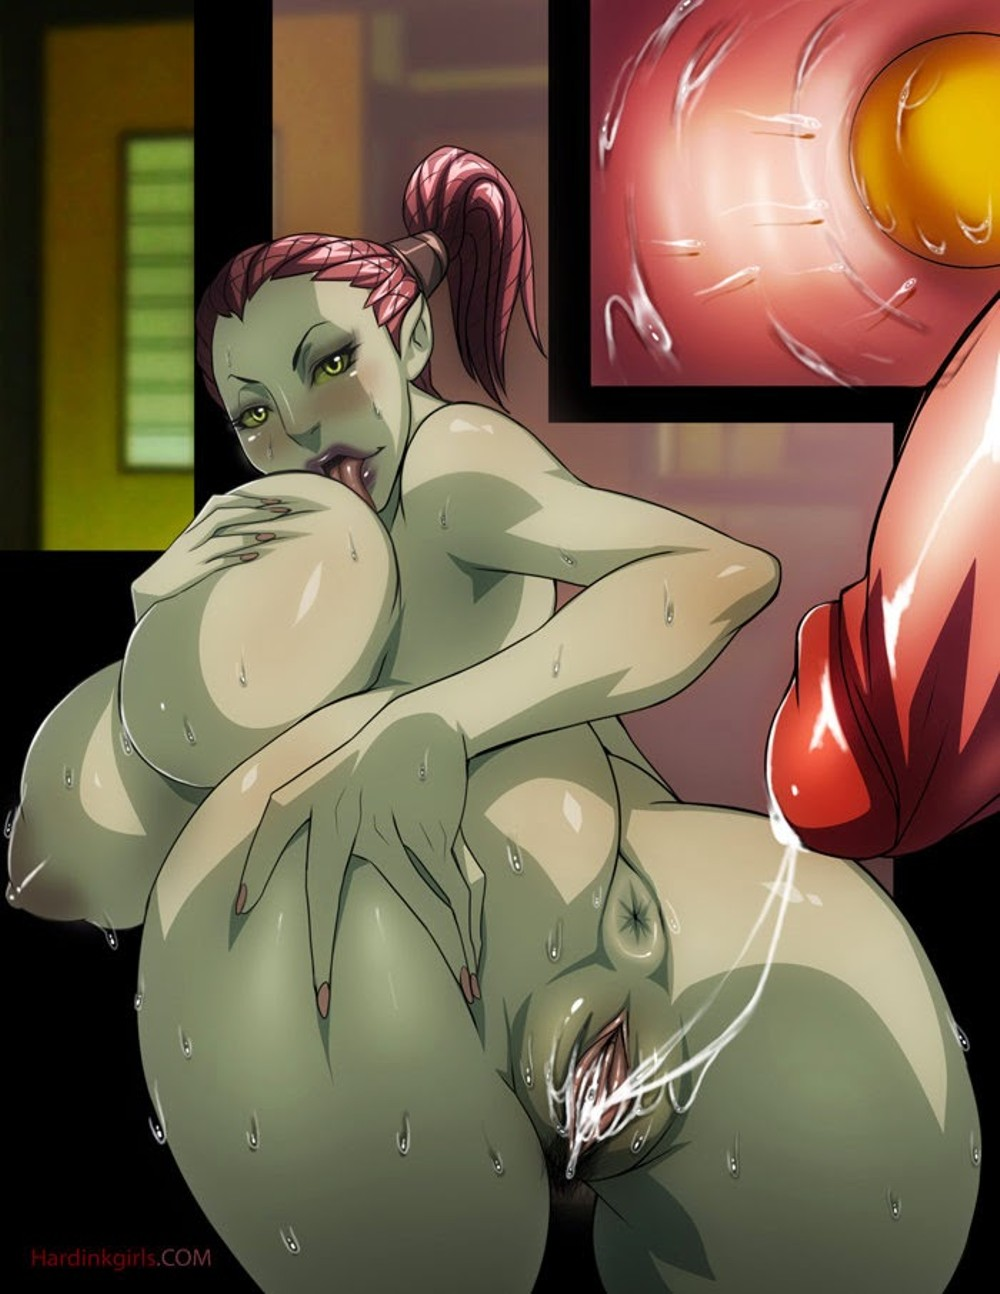 Girl and orc hentai nackt videos